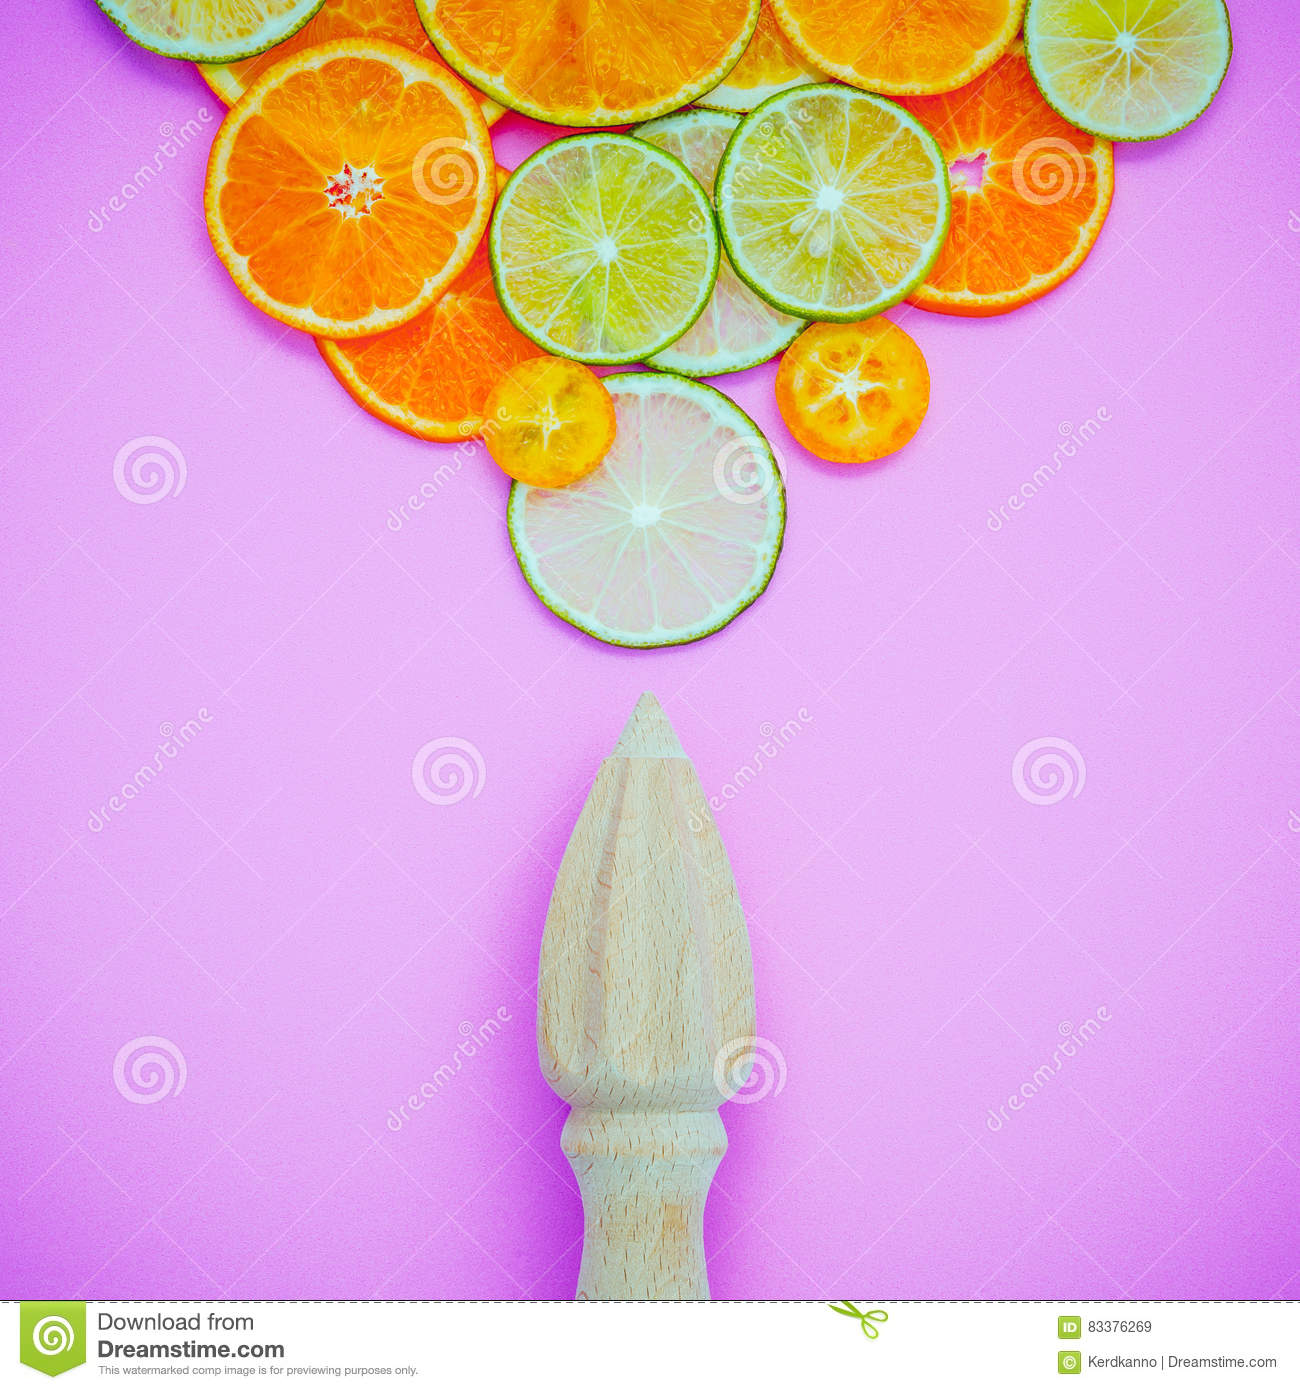 Mixed Fresh Citrus Fruits And Wooden Juicer For Summer Citrus Ju Stock Photo